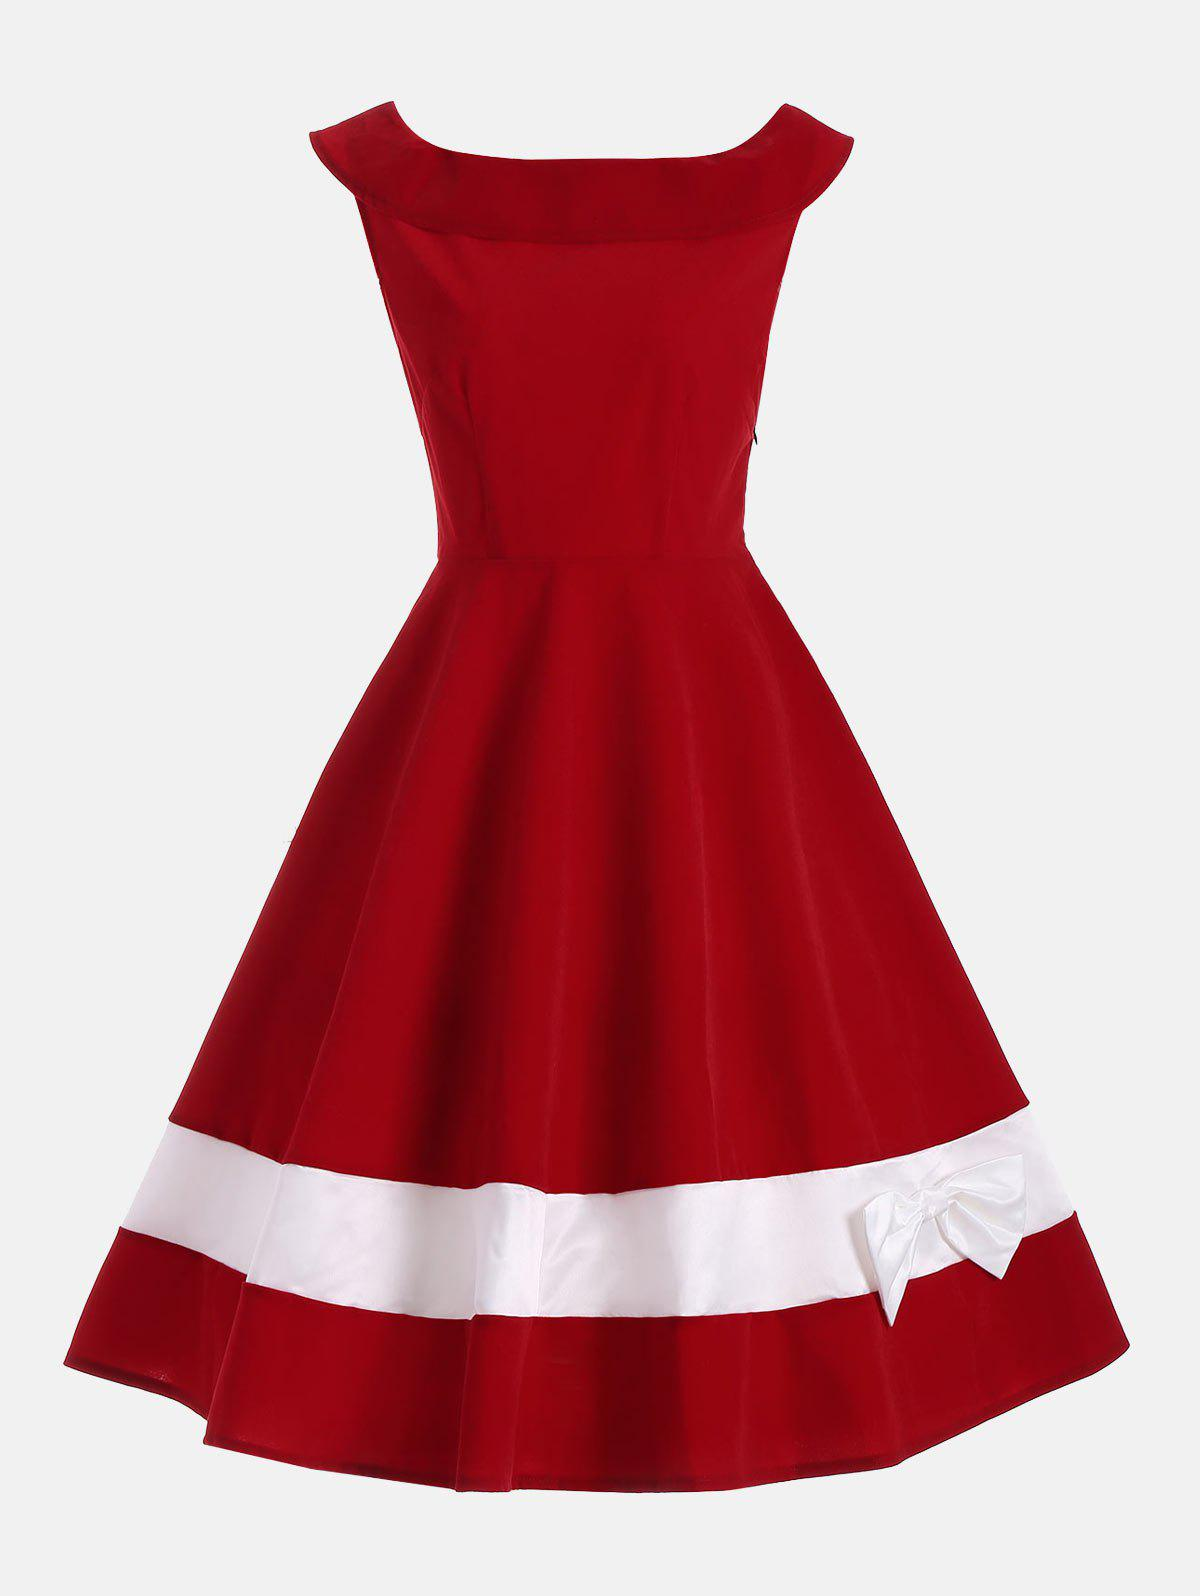 Bowknot Decorated Color Block Sleeveless Vintage Dress - DEEP RED 2XL